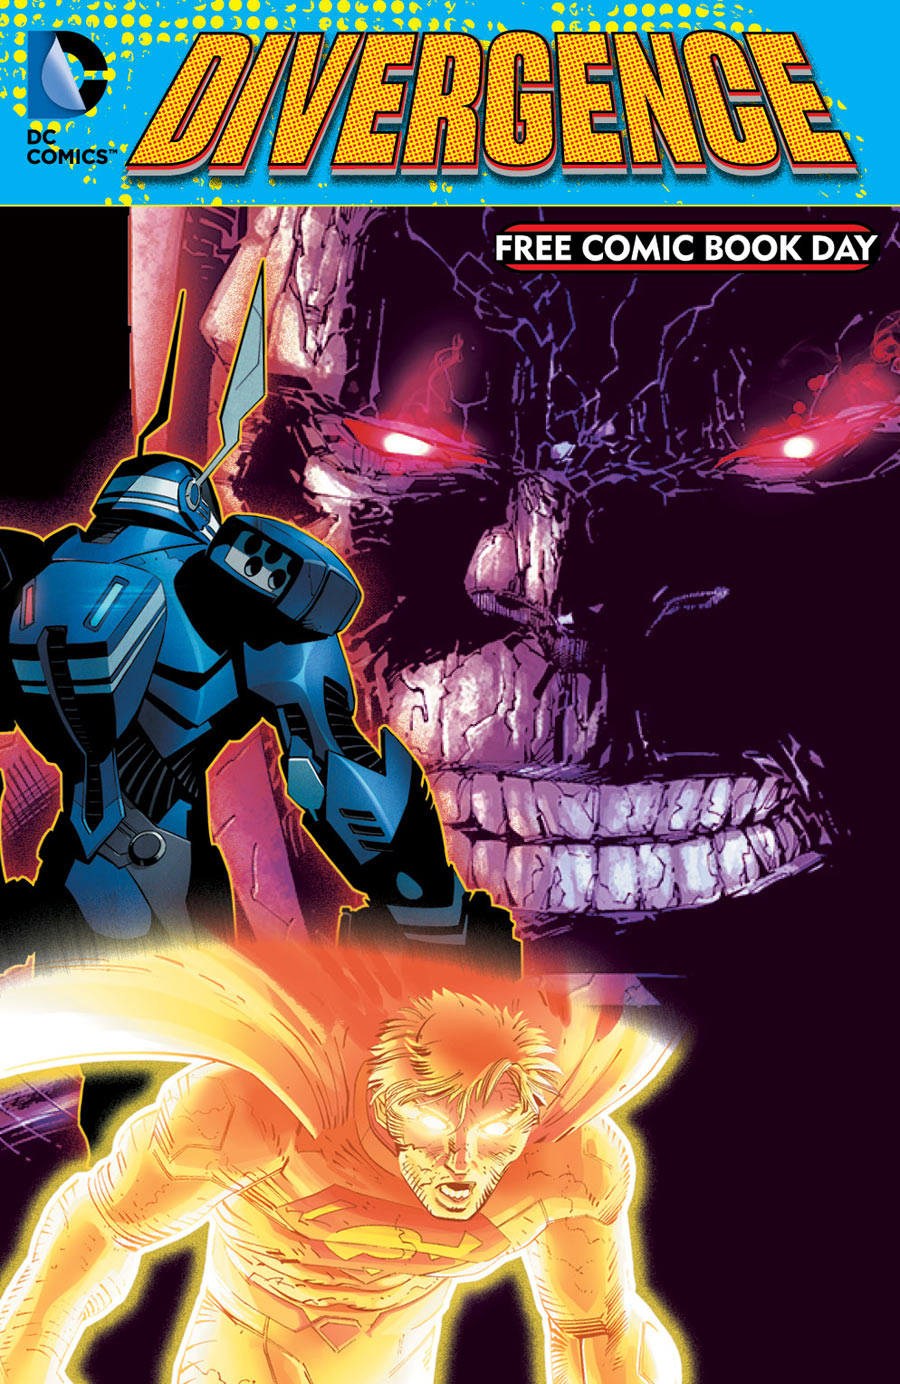 divergence free comic book day